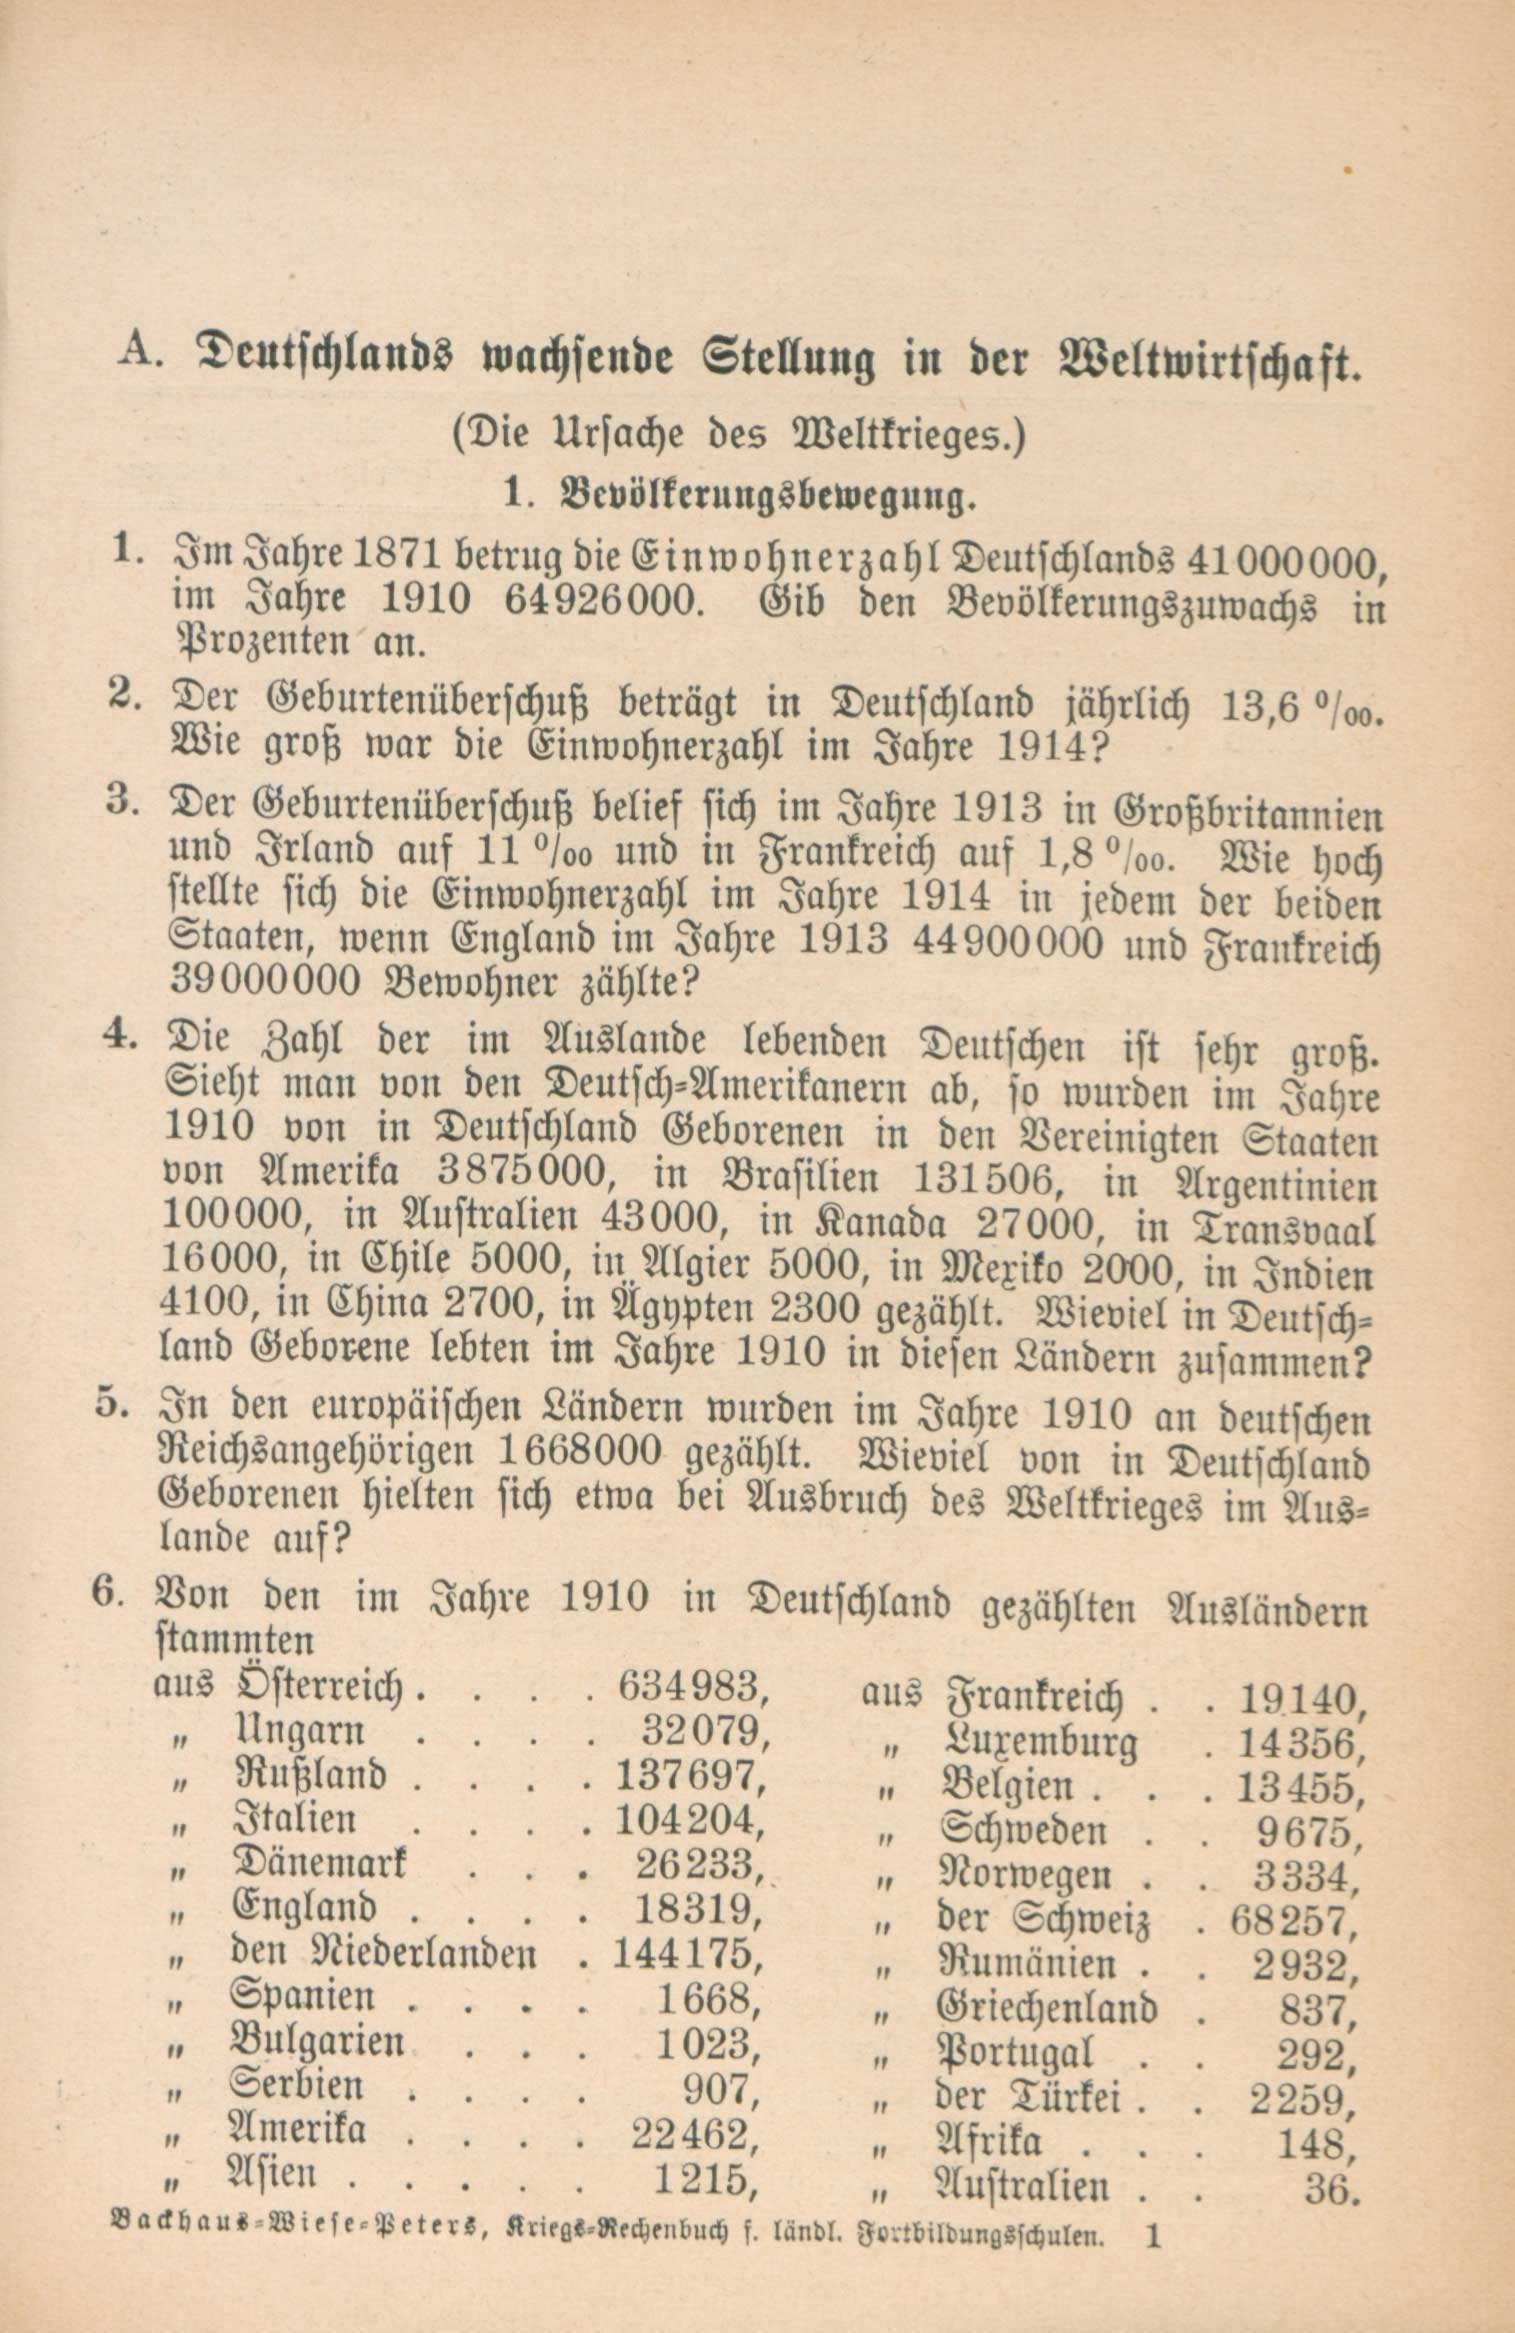 Maths problems from a German textbook. The problems contain statistics relating to the war, and require children to perform various calculations with them. Such questions helped to spread the idea of a powerful and successful Germany.